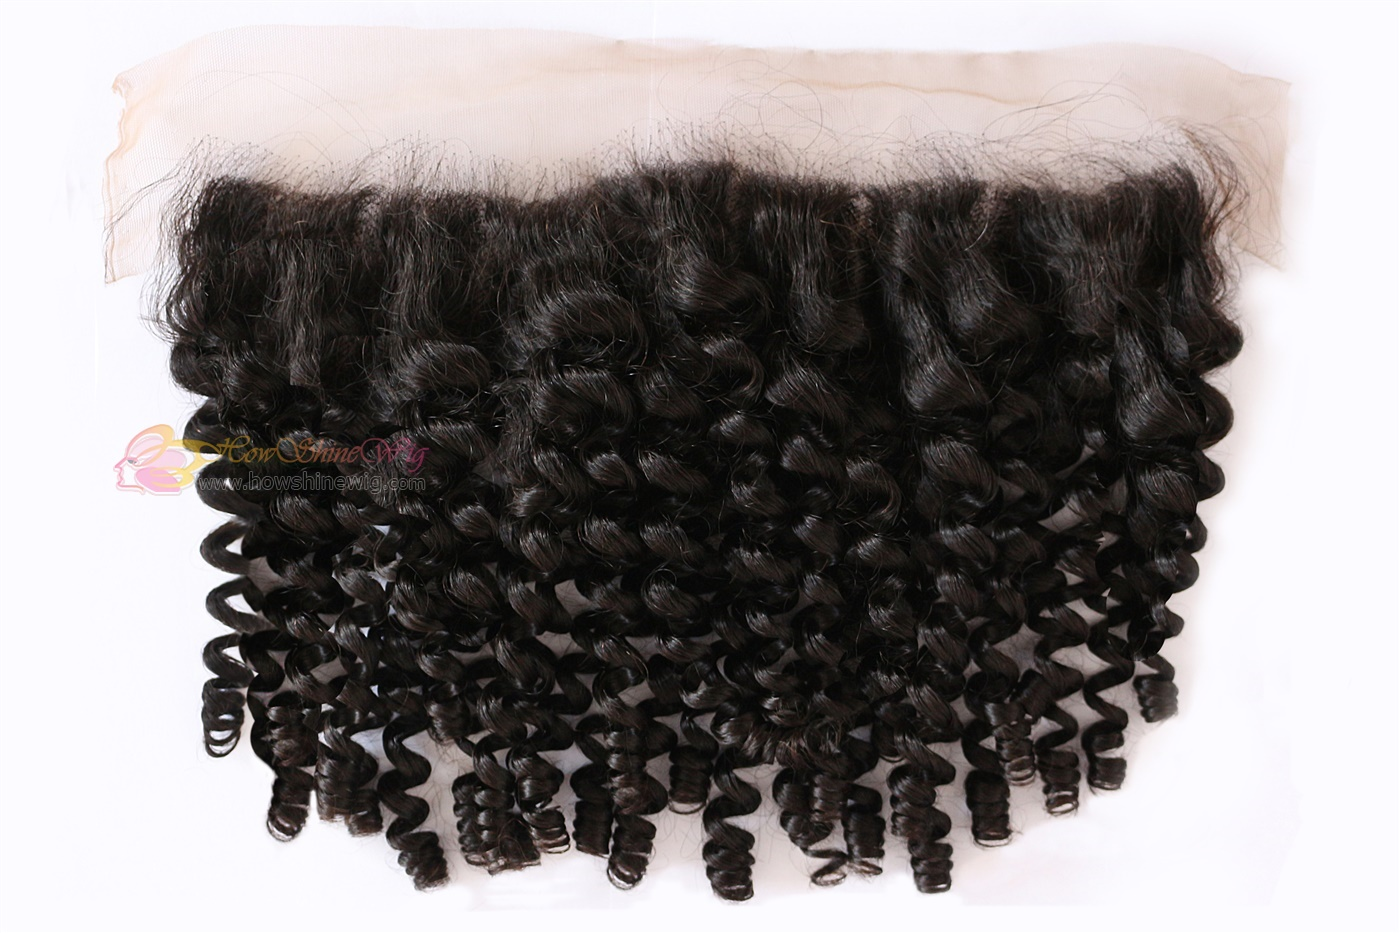 100% Virgin Human Hair 360 Lace Frontal